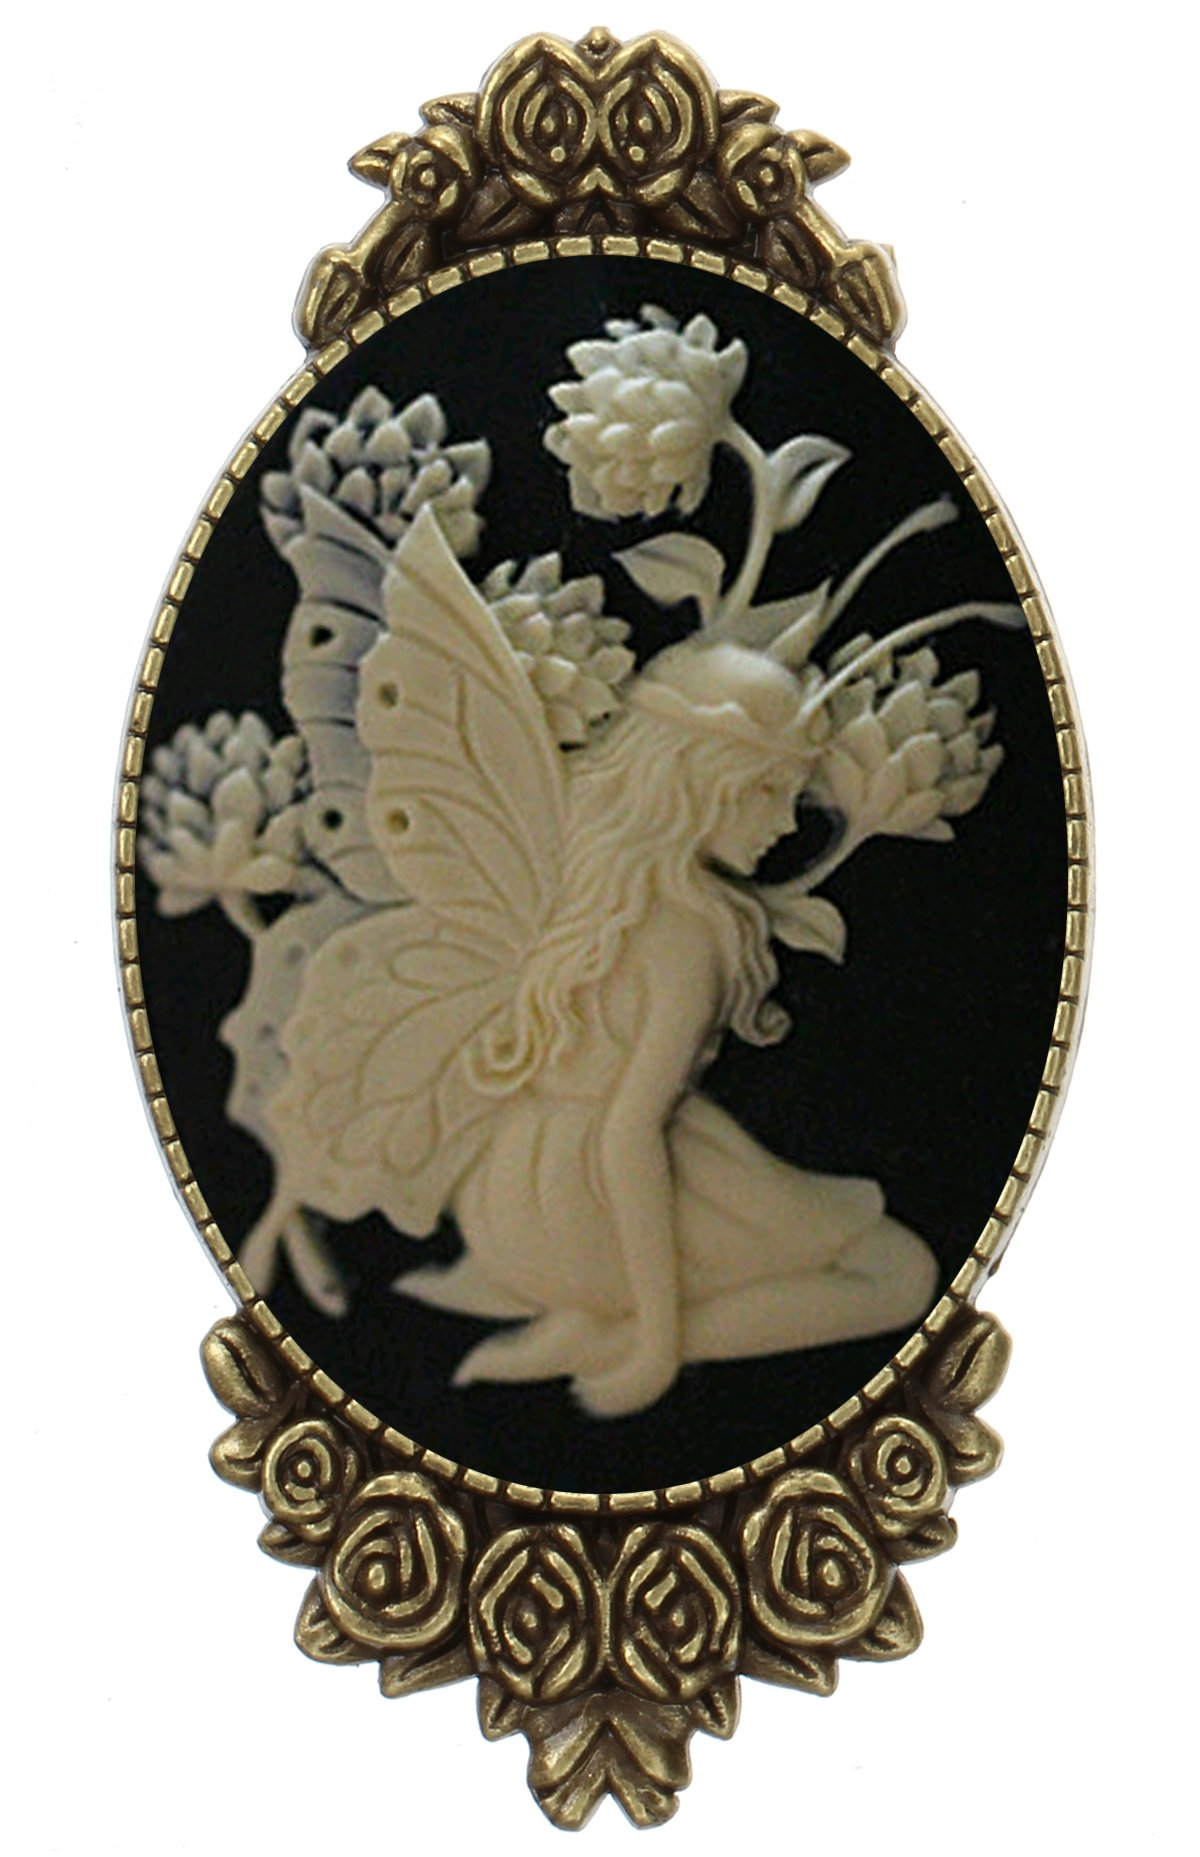 Angel Fairy Brooch Pin Rose Decor Antique Brass Fashion Jewelry Pouch for Gift